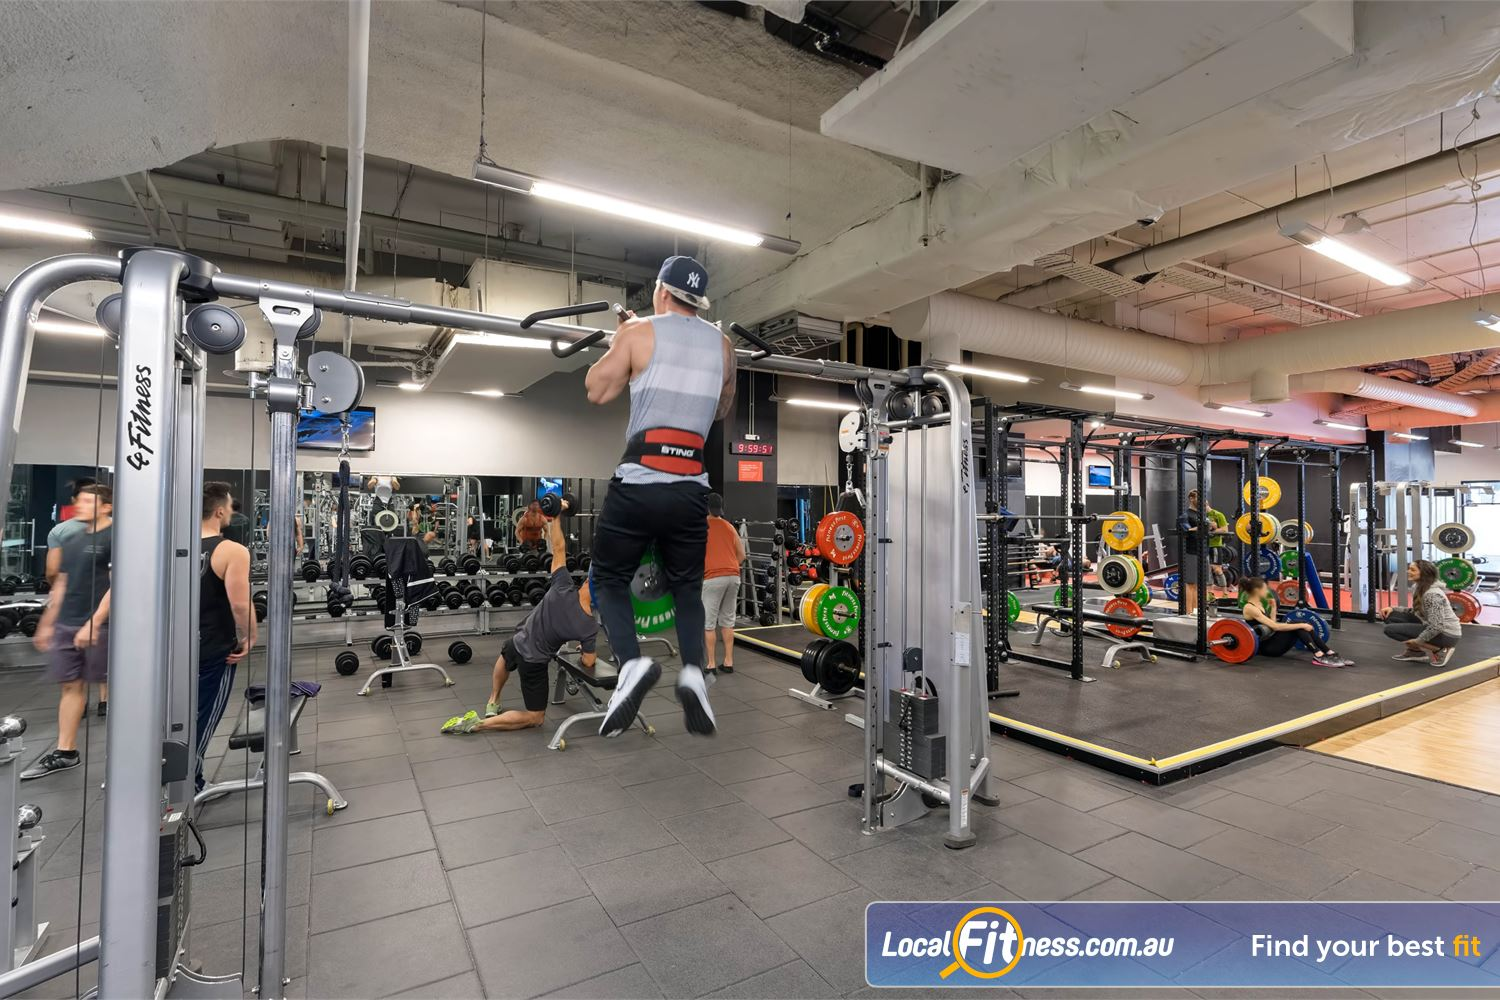 Fitness First Platinum Market St. Near Strawberry Hills Our Sydney gym includes state of the art pin-loading equipment from Life Fitness.